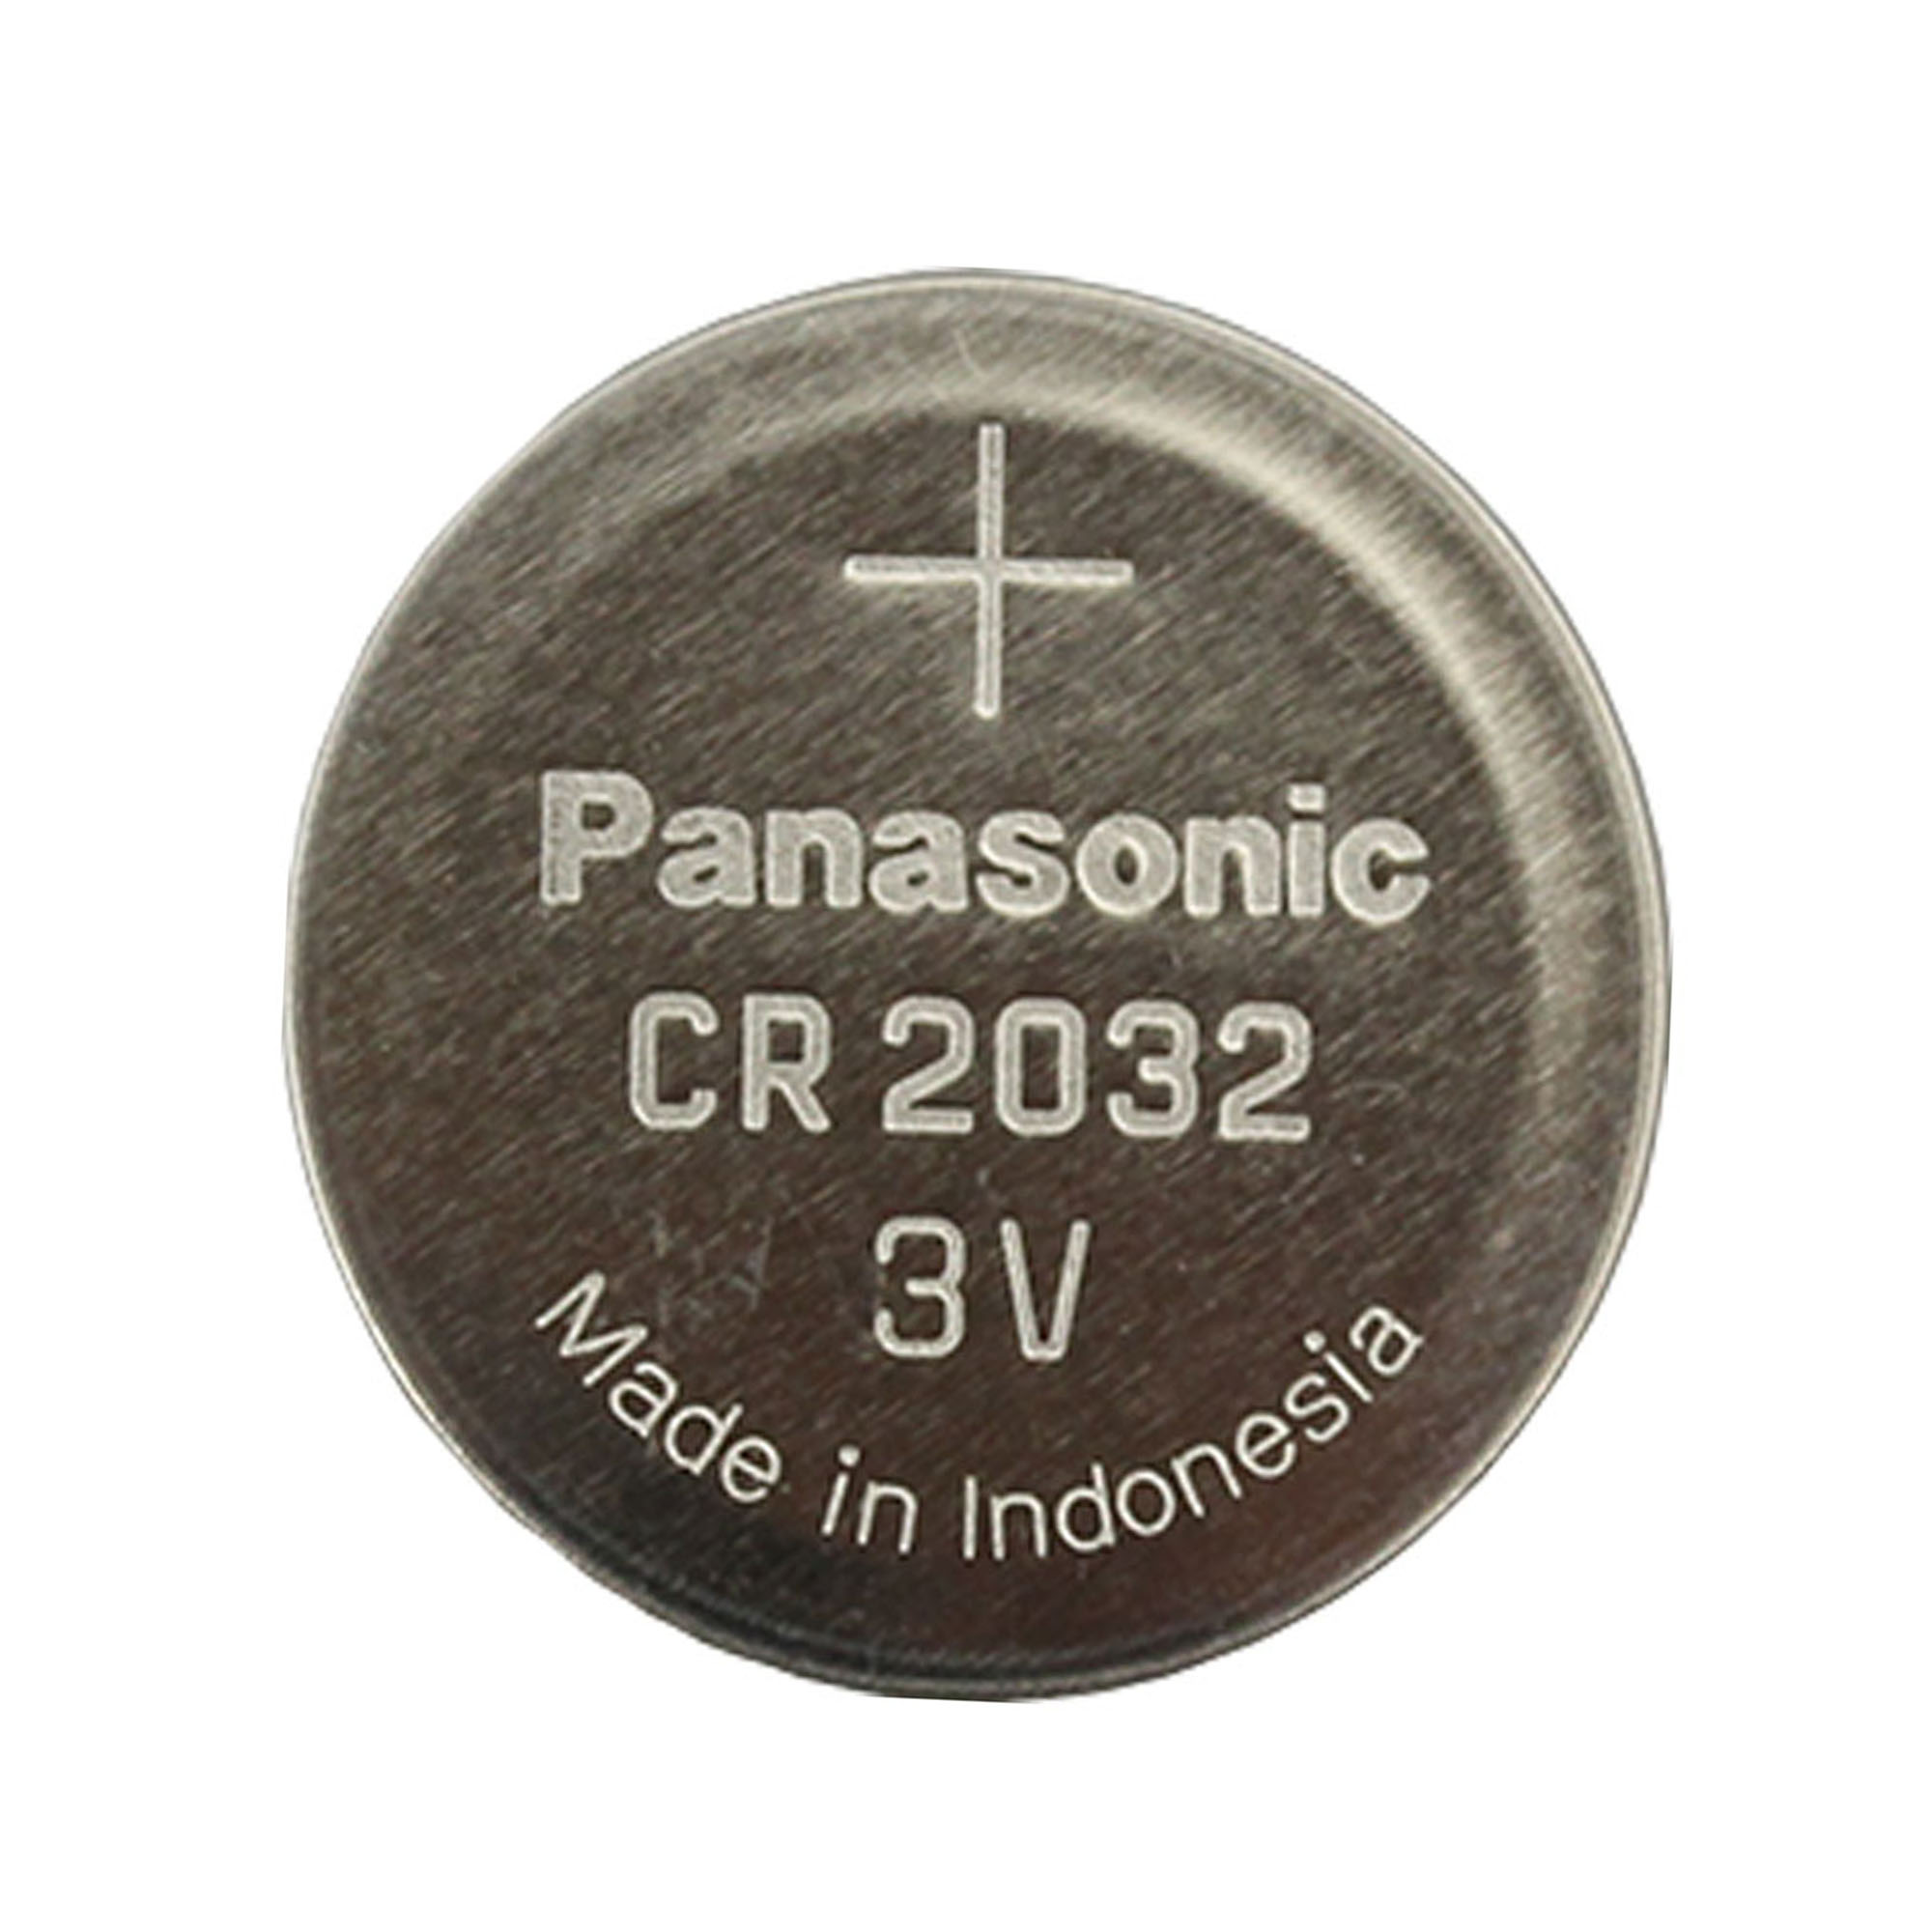 Cr2032 Panasonic 3 Volt Lithium Coin Cell Battery